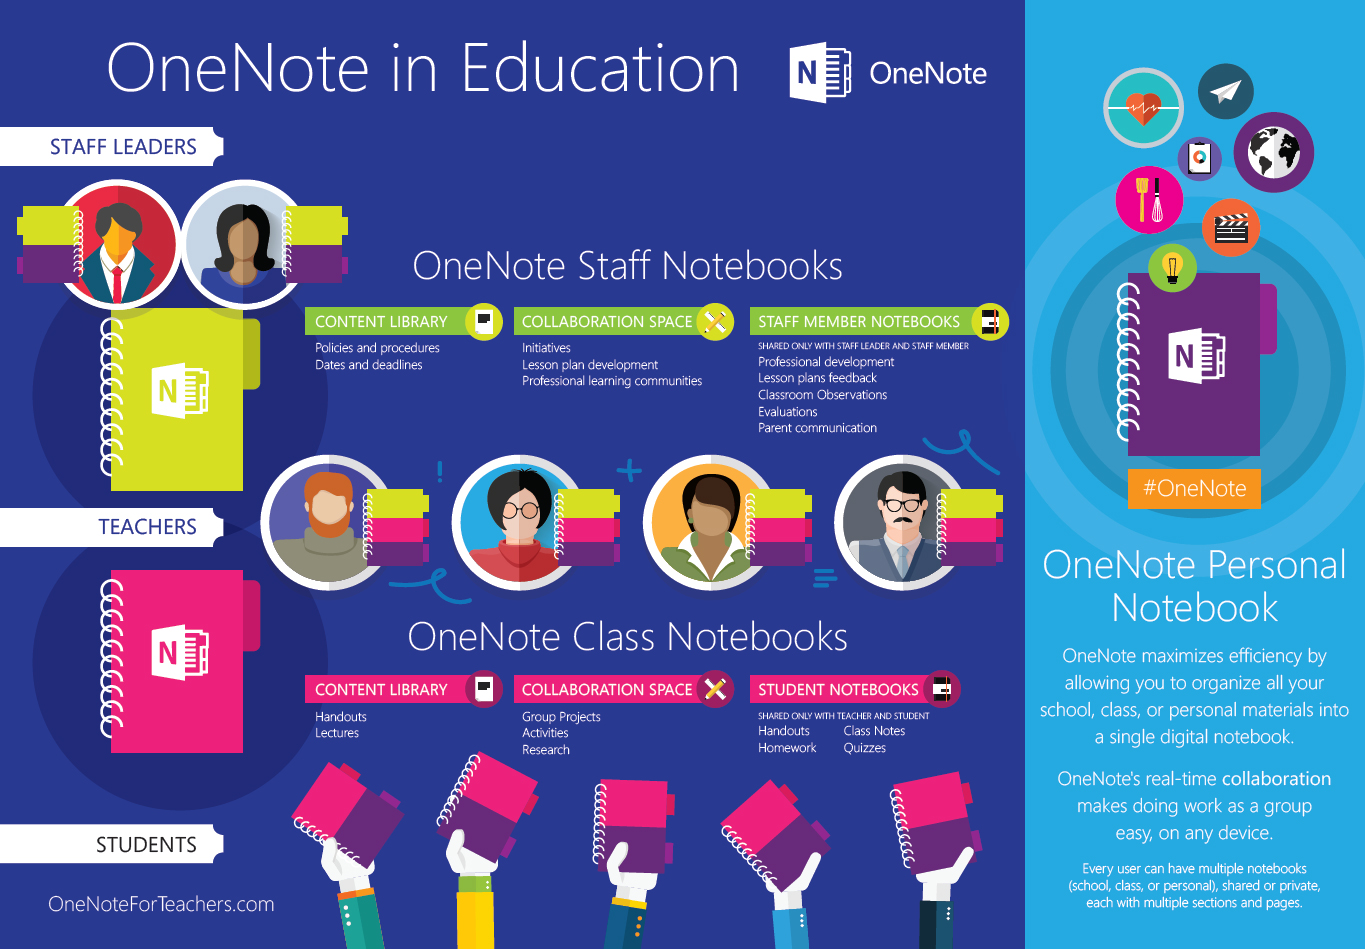 OneNote in Education